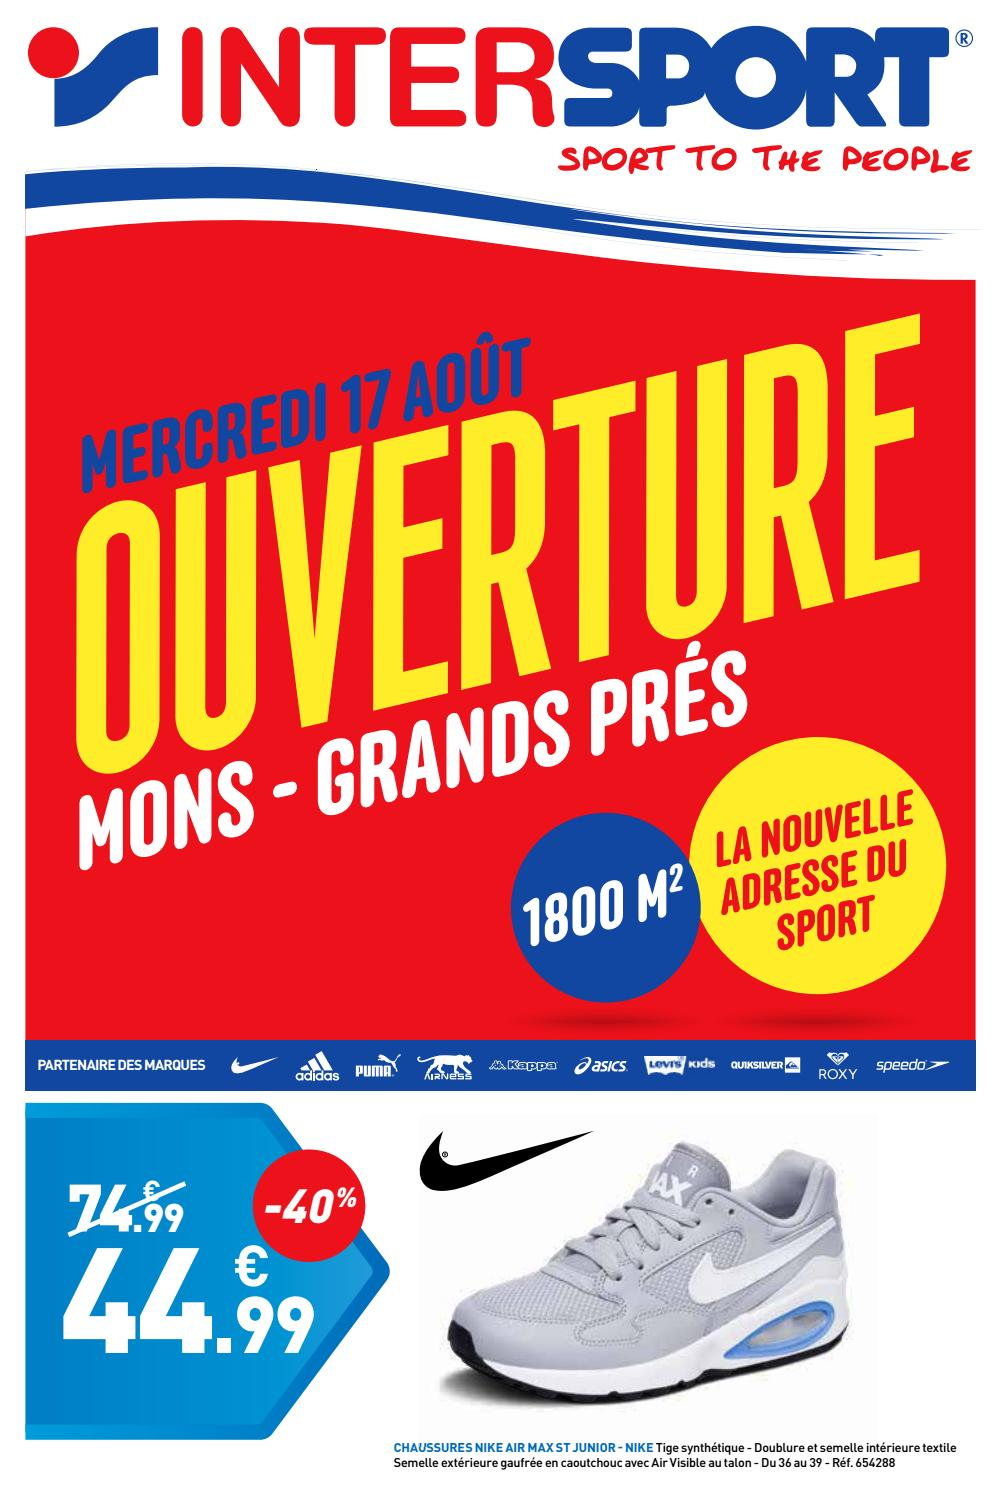 Route Chaussure Velo Airness Intersport intersport wm8Nnv0